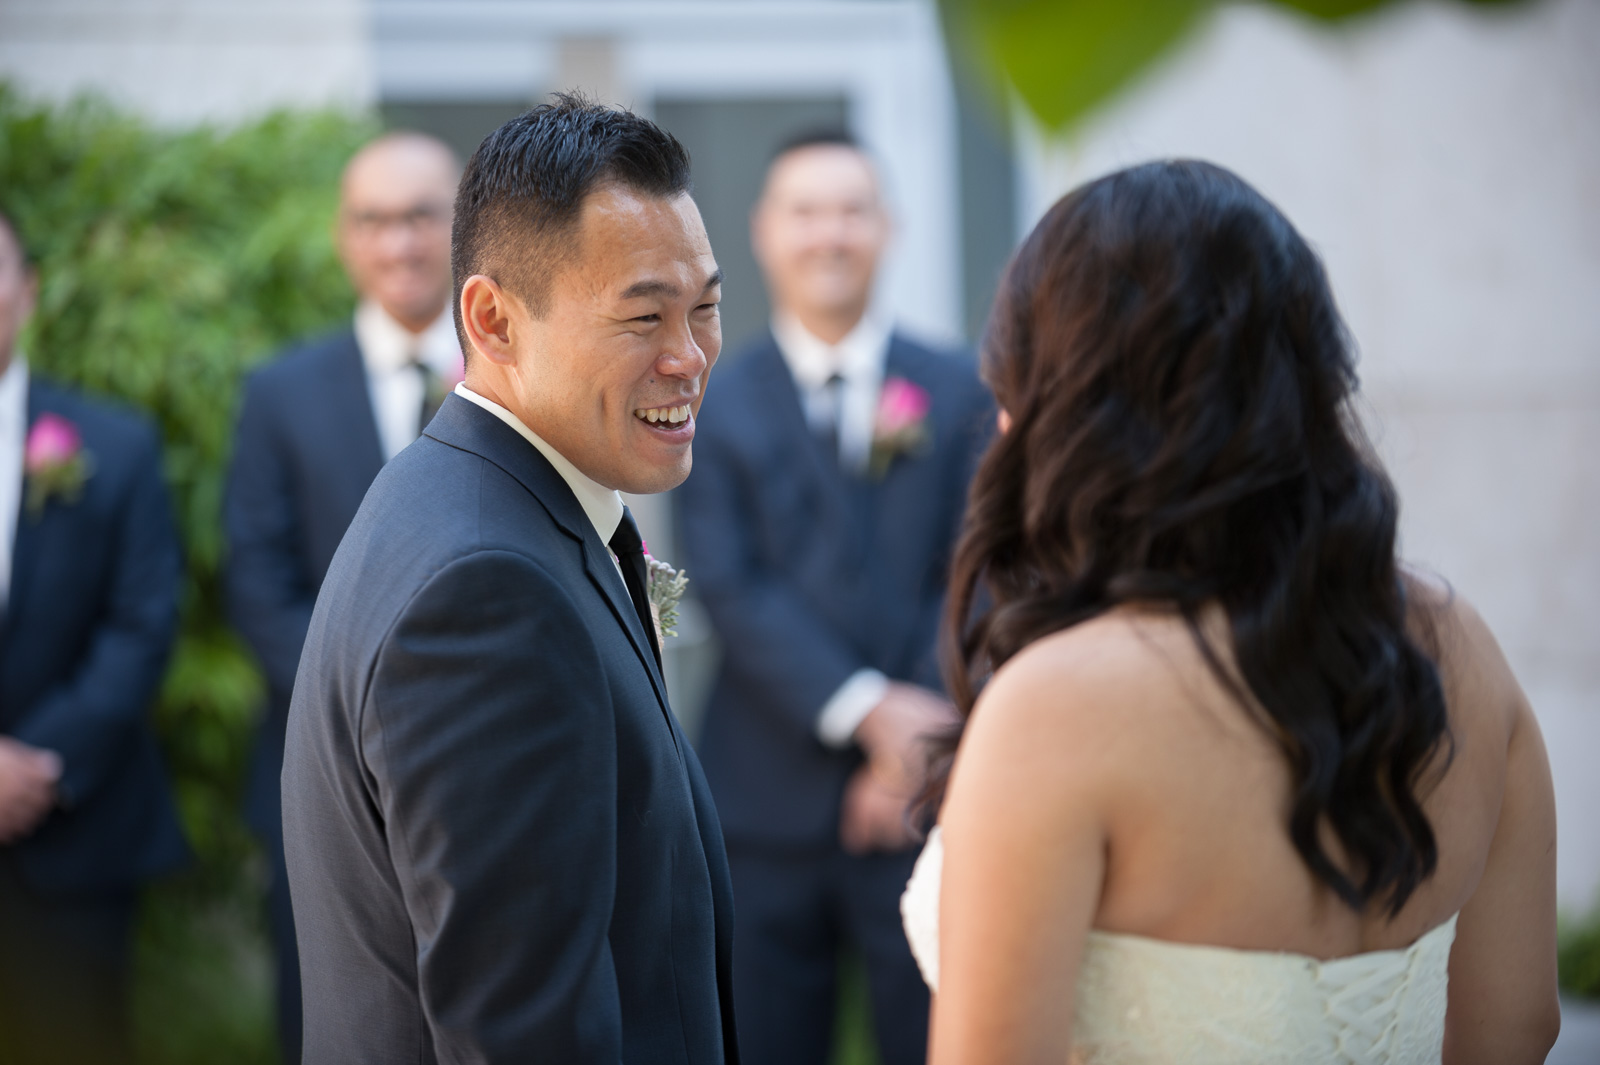 victoria-wedding-photographers-shaughnessy-restaurant-wedding-vandusen-gardens-wedding-15.jpg